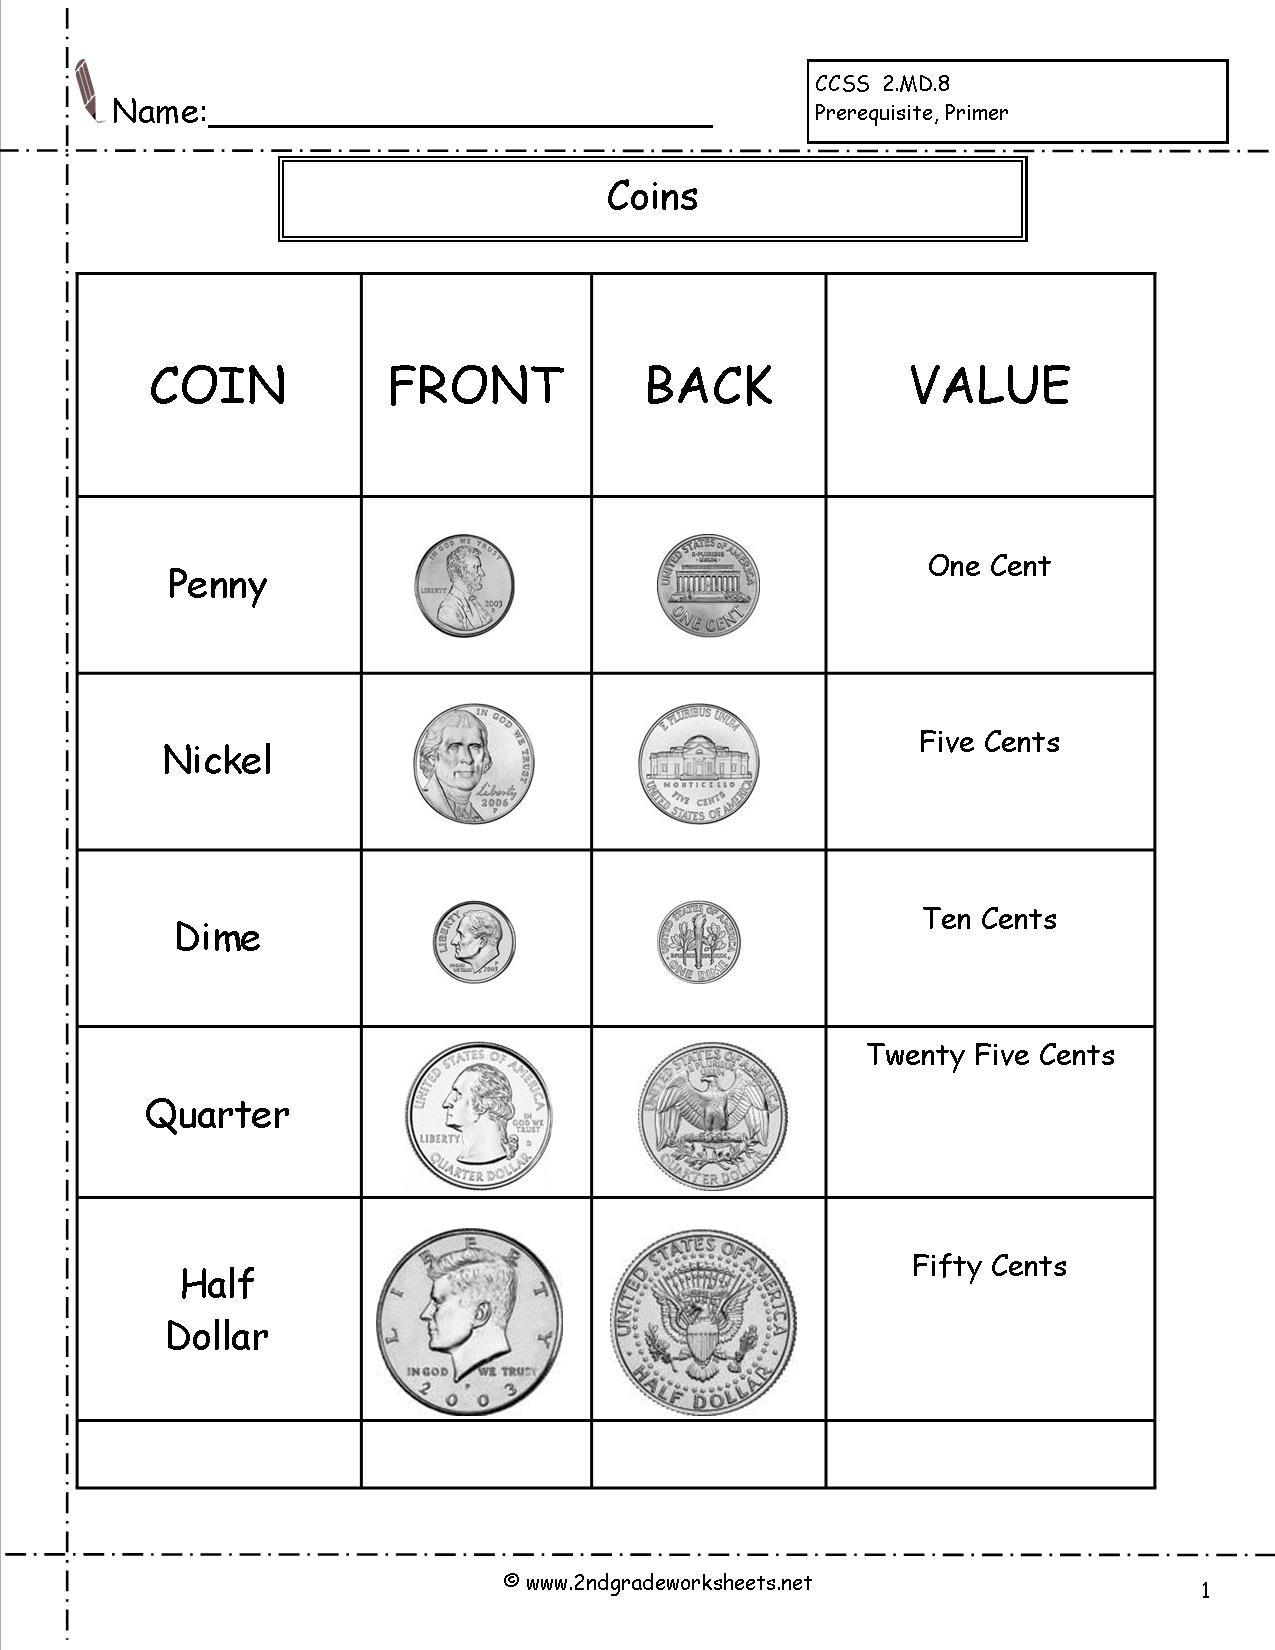 Counting Coins Worksheets First Grade Counting Coins and Money Worksheets Printouts Coin for 2nd